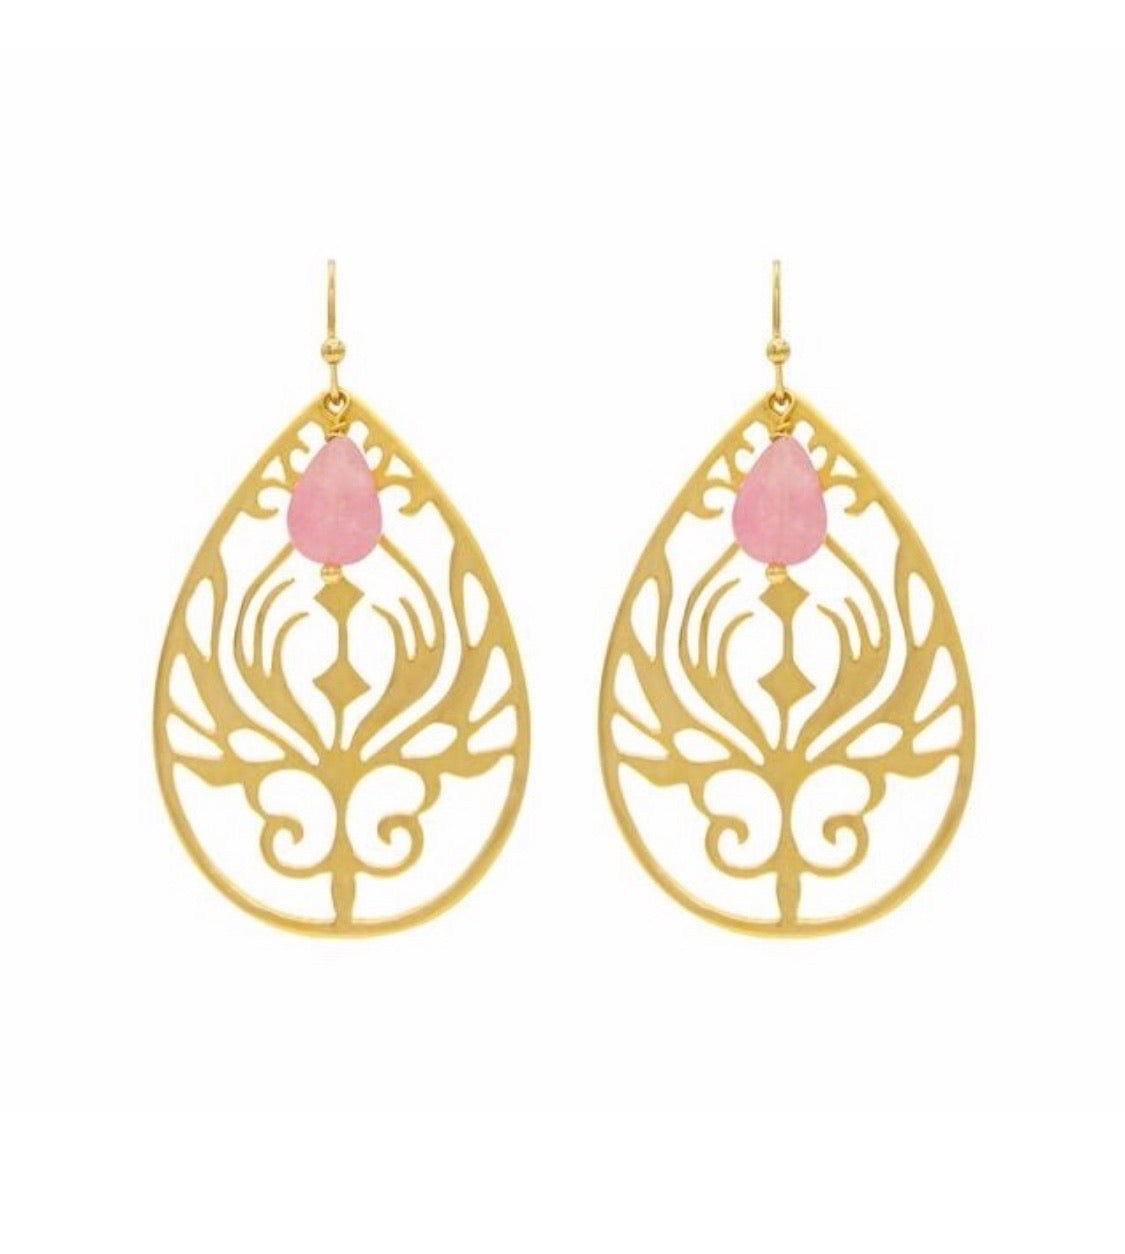 Secret Garden earrings